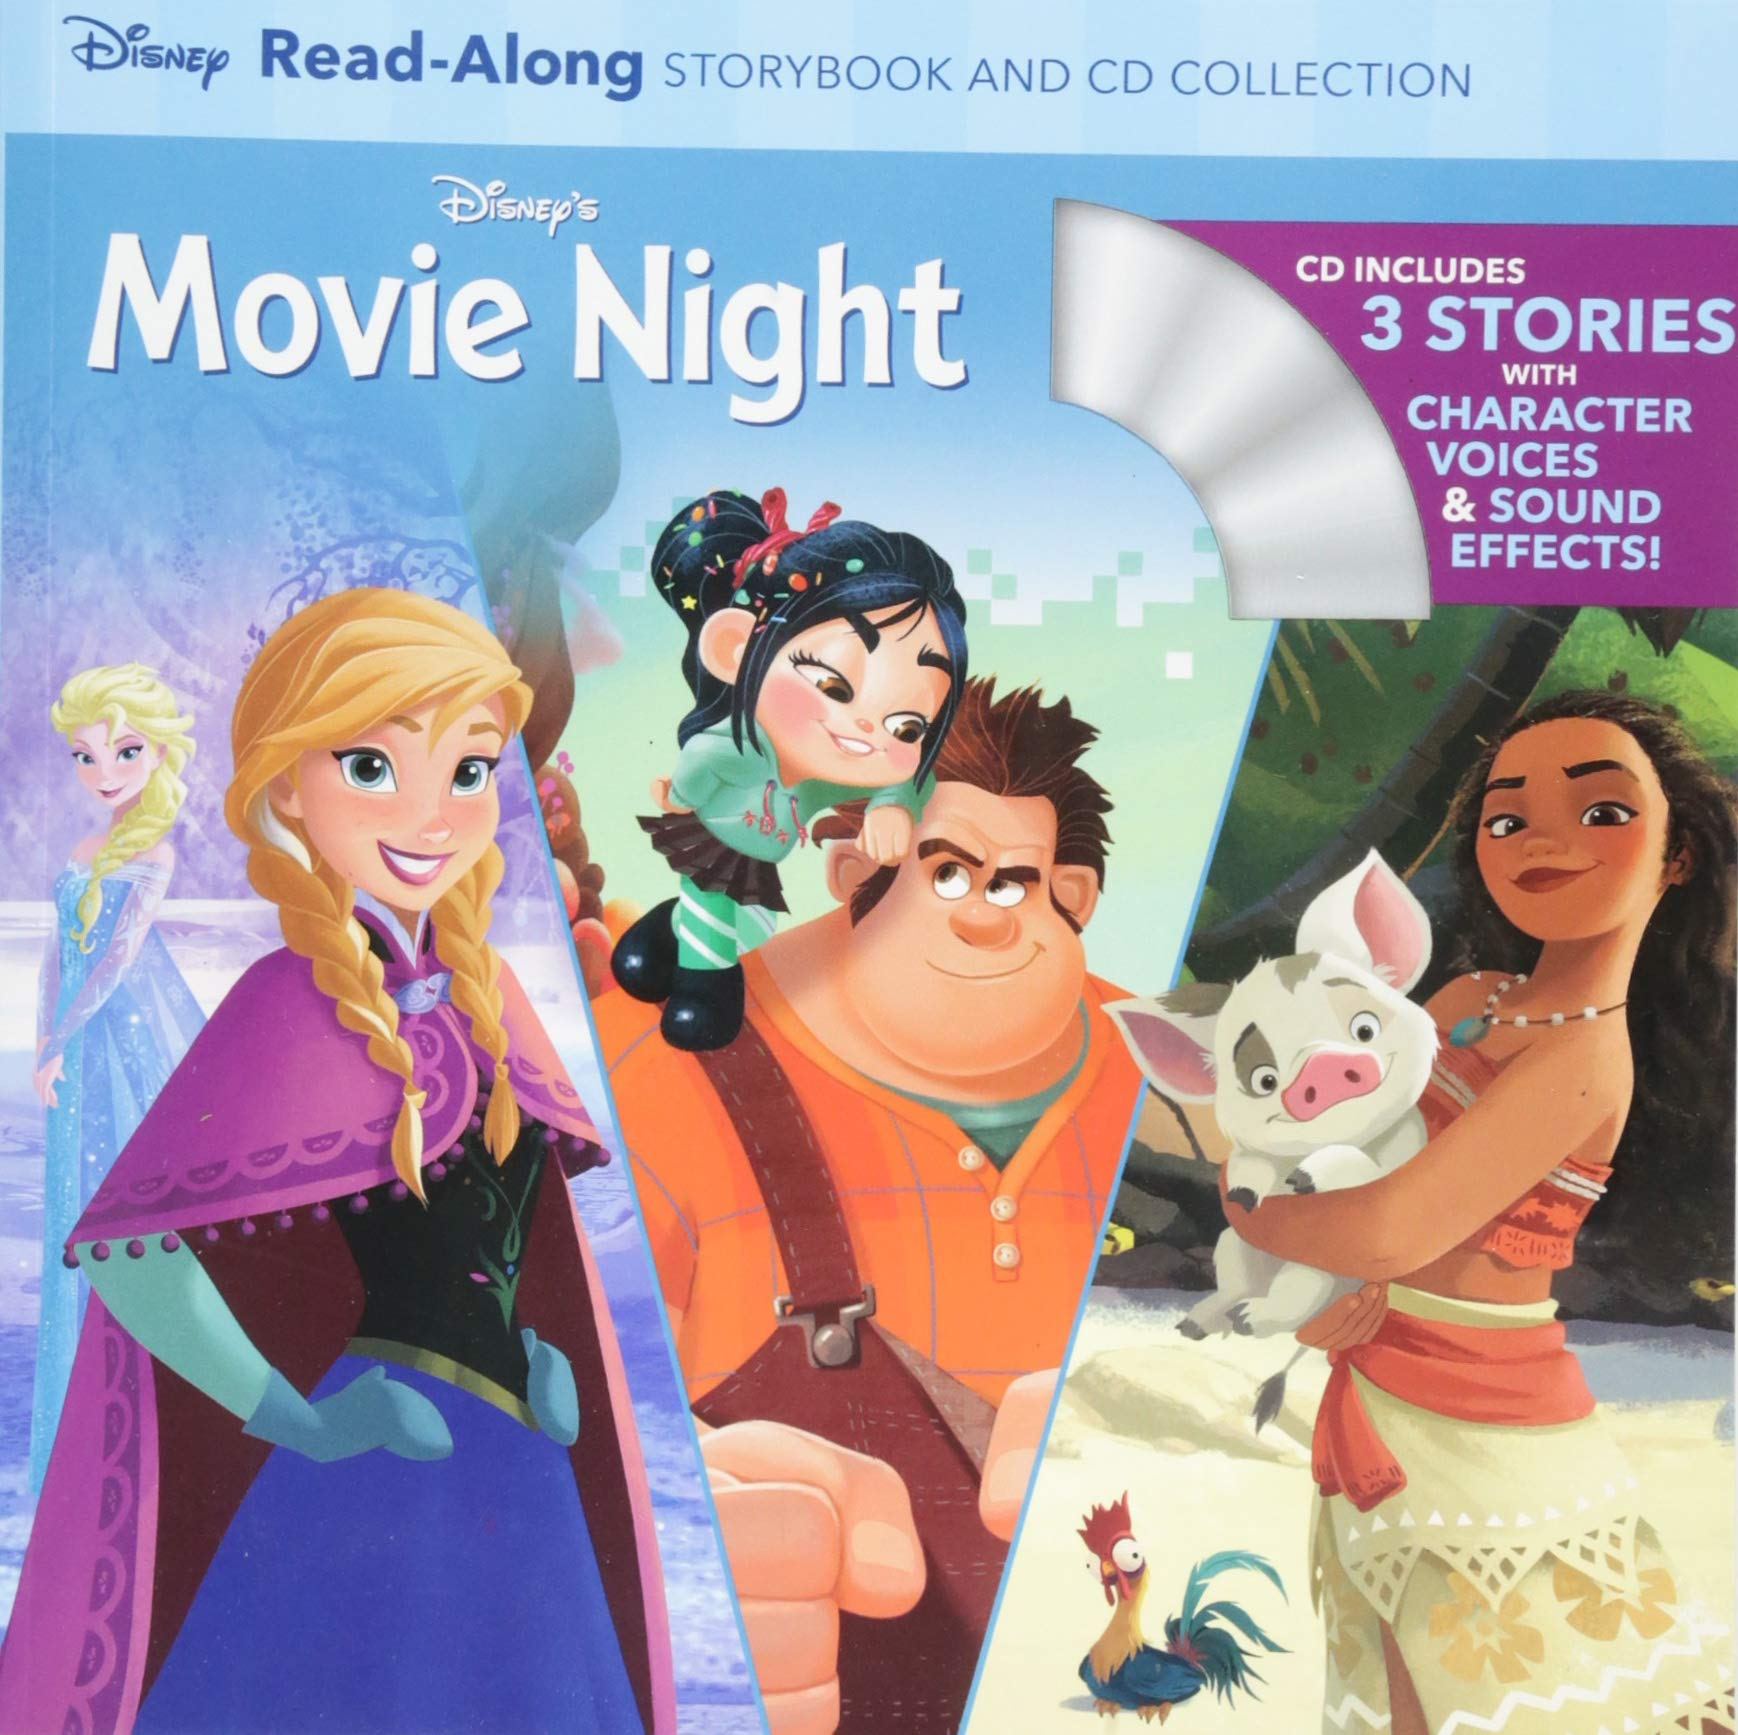 Disneys Movie Read Along Storybook Collection product image